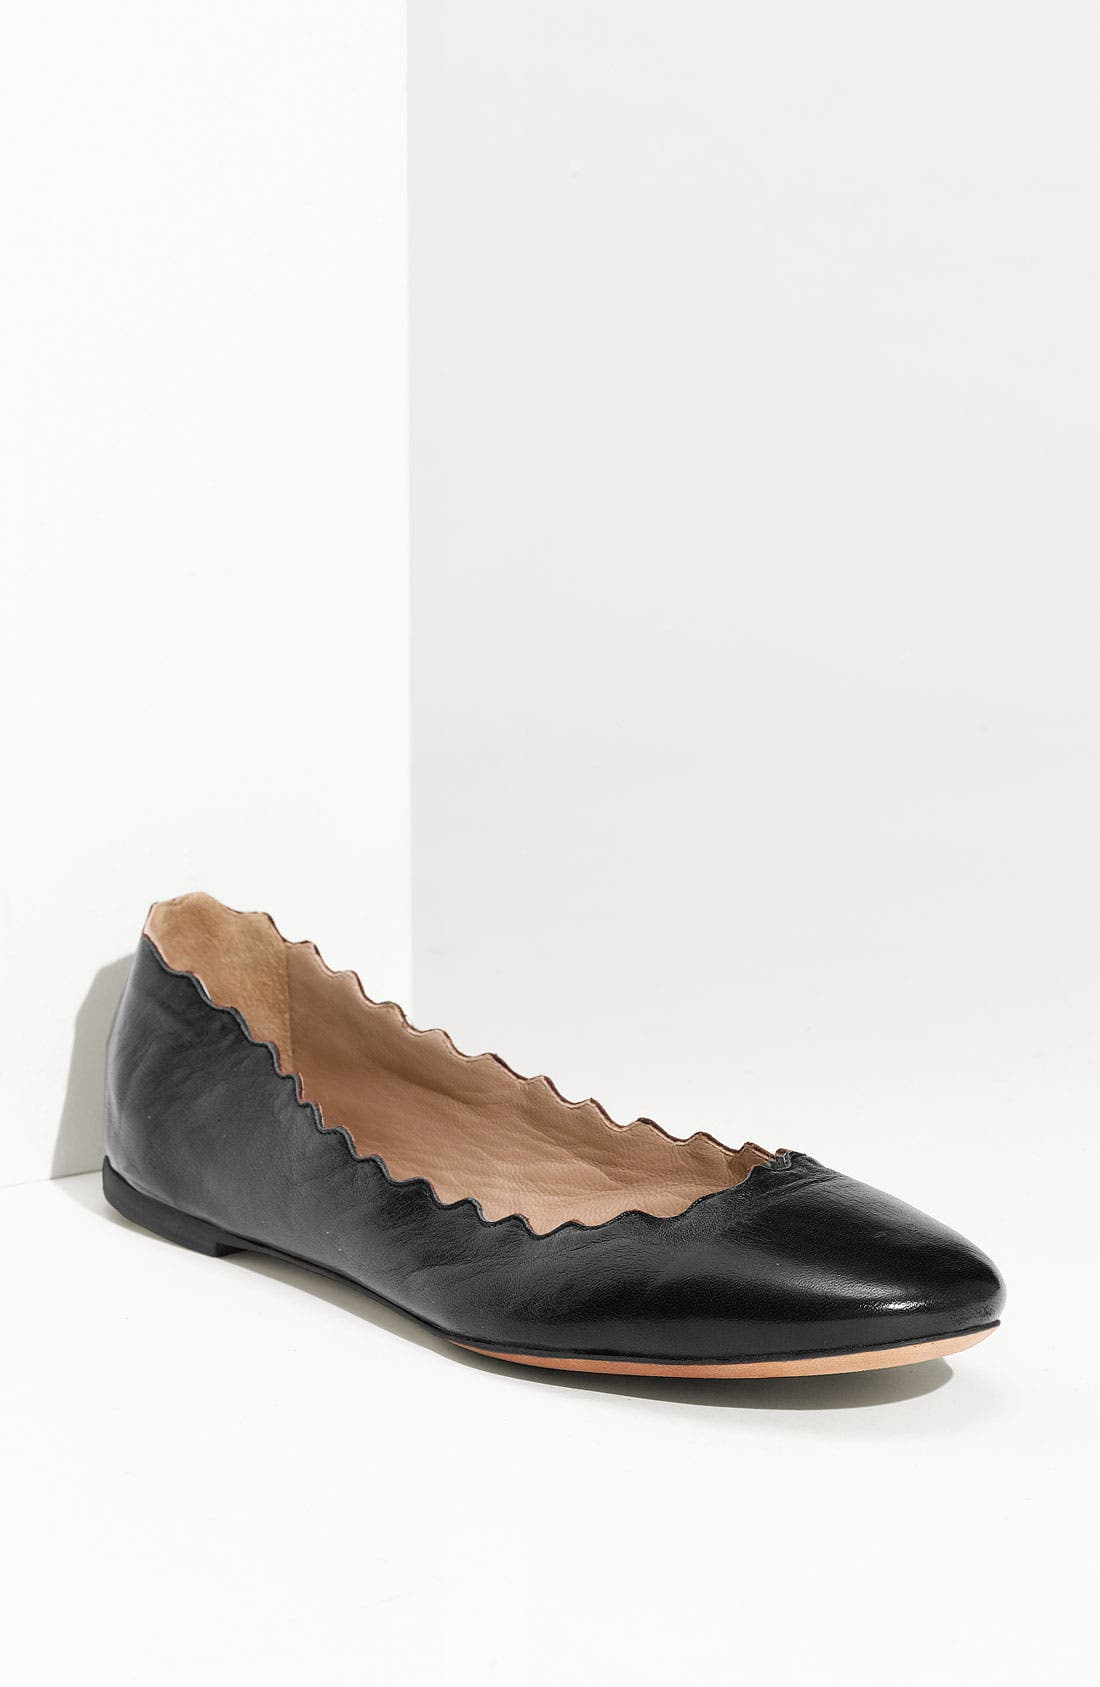 Chloe Scalloped Ballet Flat